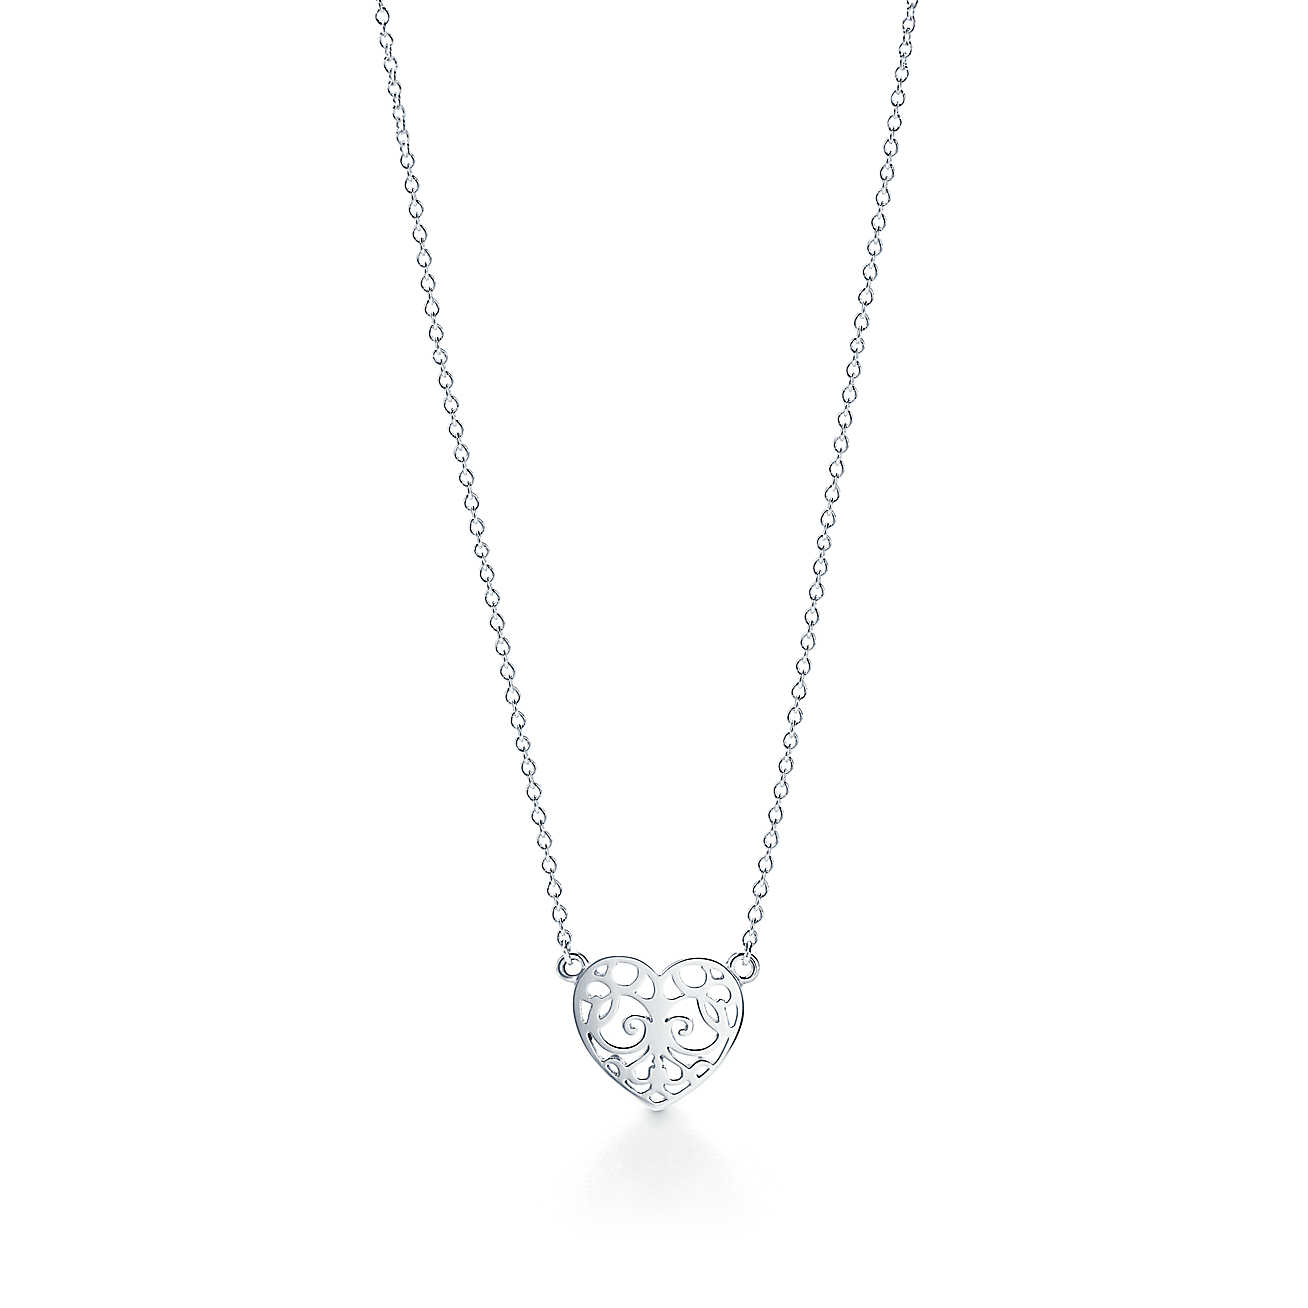 tiffany-enchantheart-pendant-35251545_952895_ED